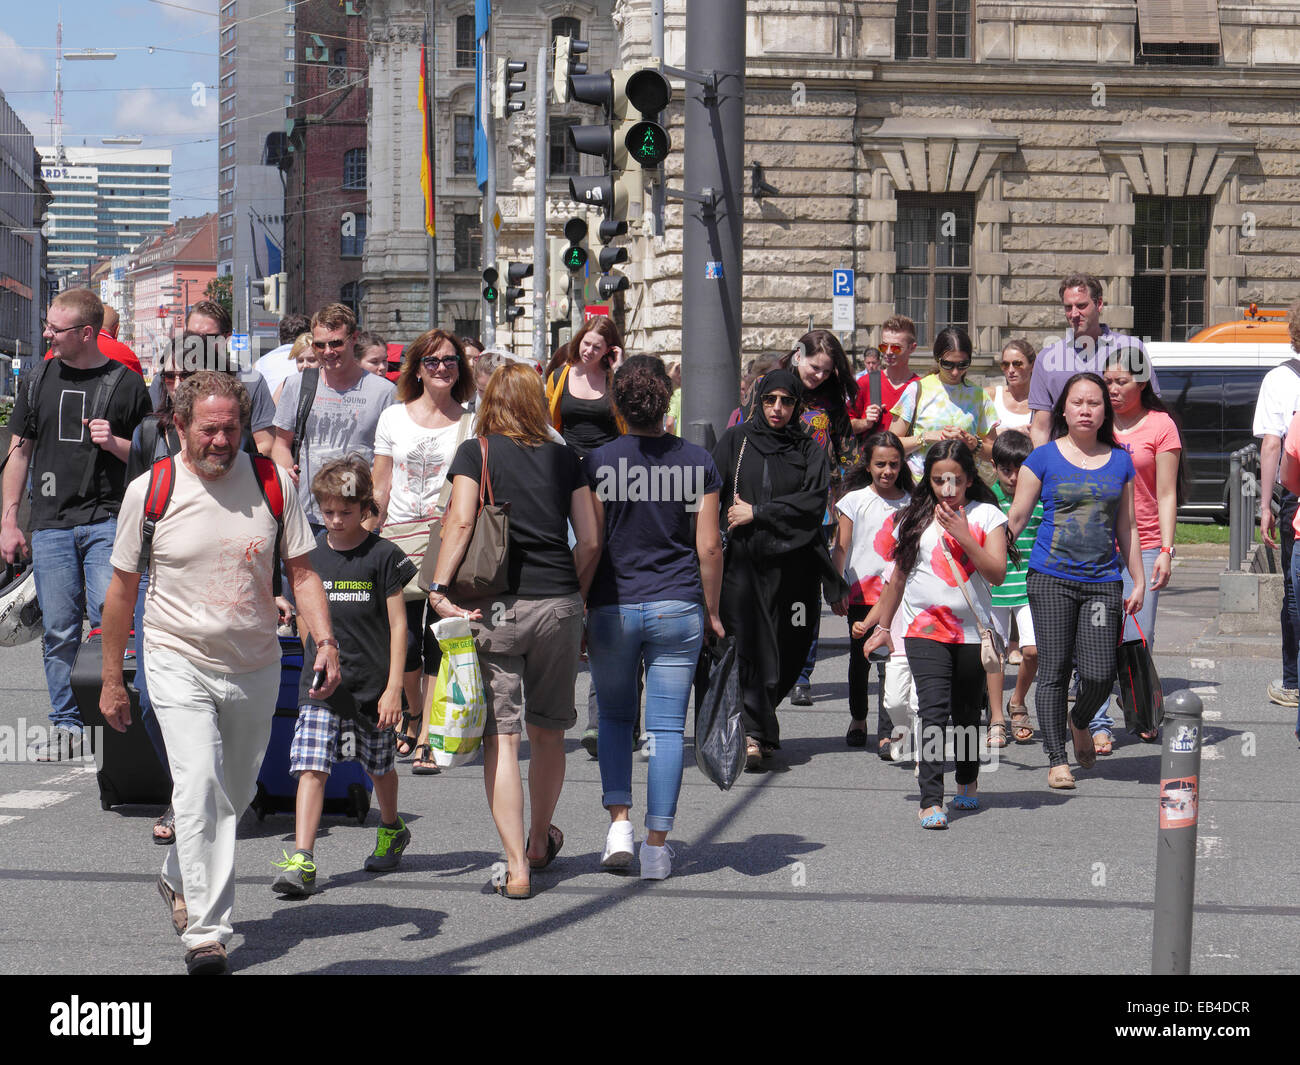 Pedestrians Arabic tourist crossing Zebra Road Downtown Munich Germany - Stock Image